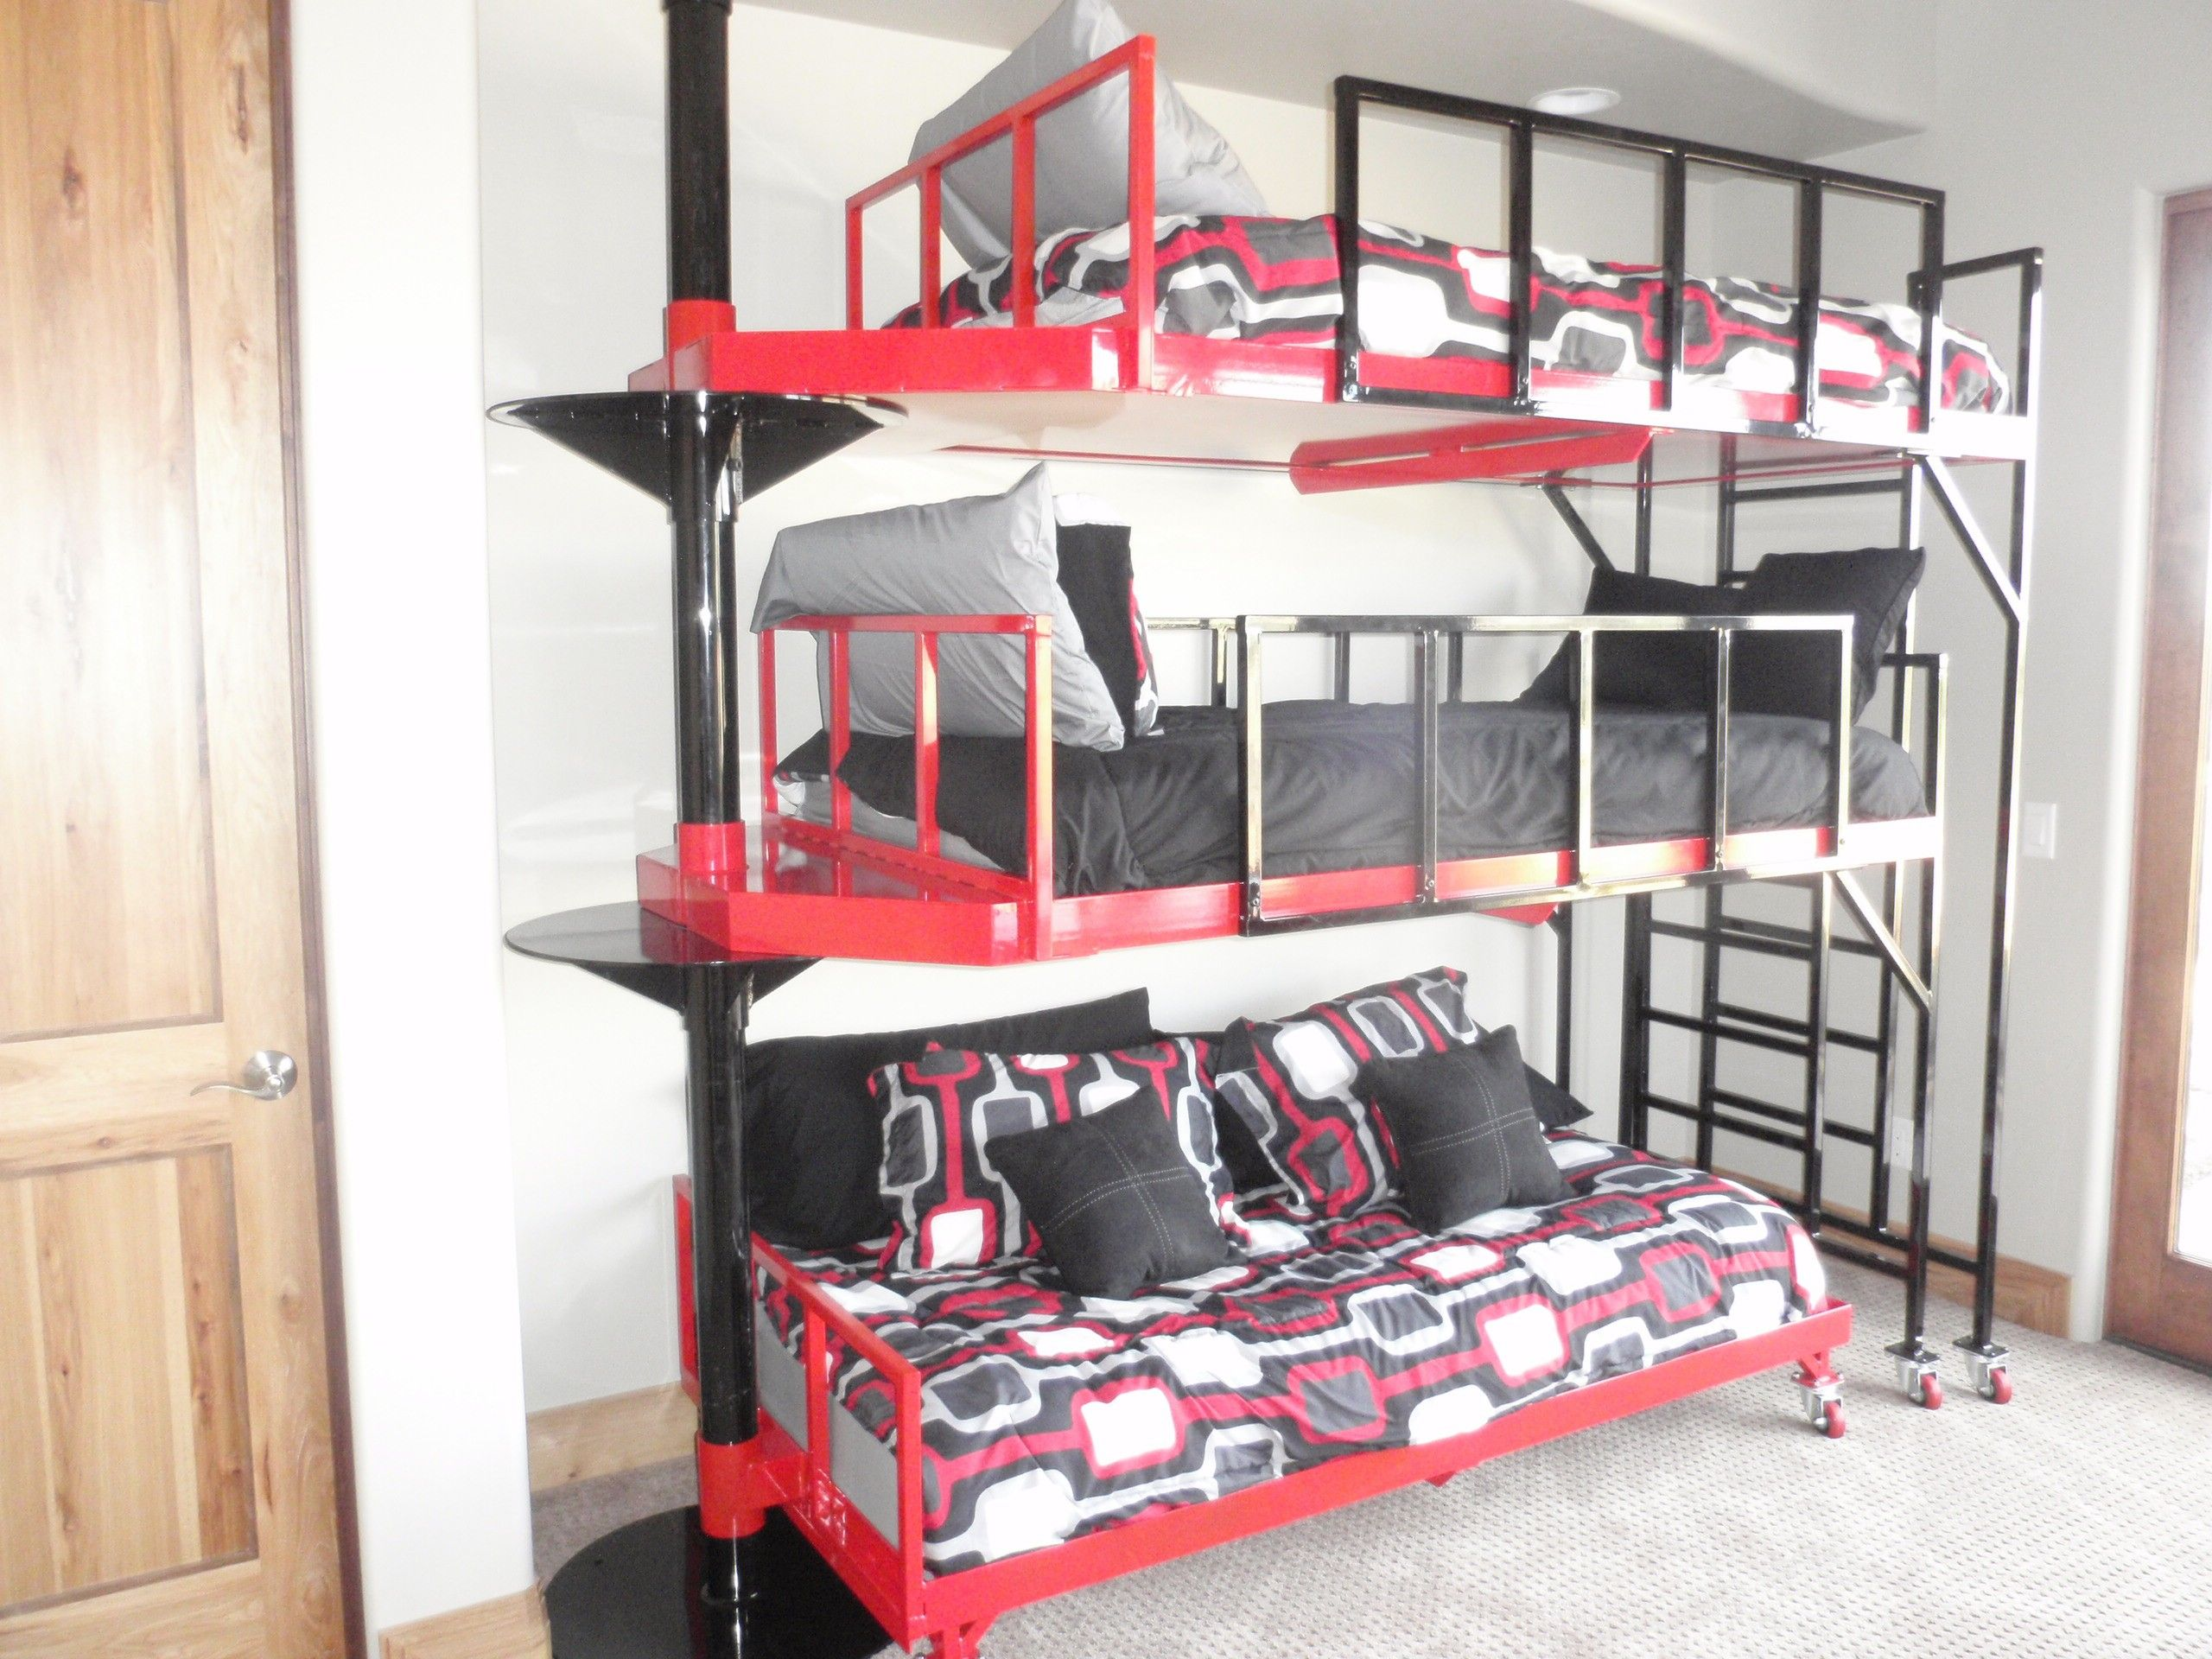 Contemporary 3 Tierd Pivoting Bunk Bed Bunk beds, Bed